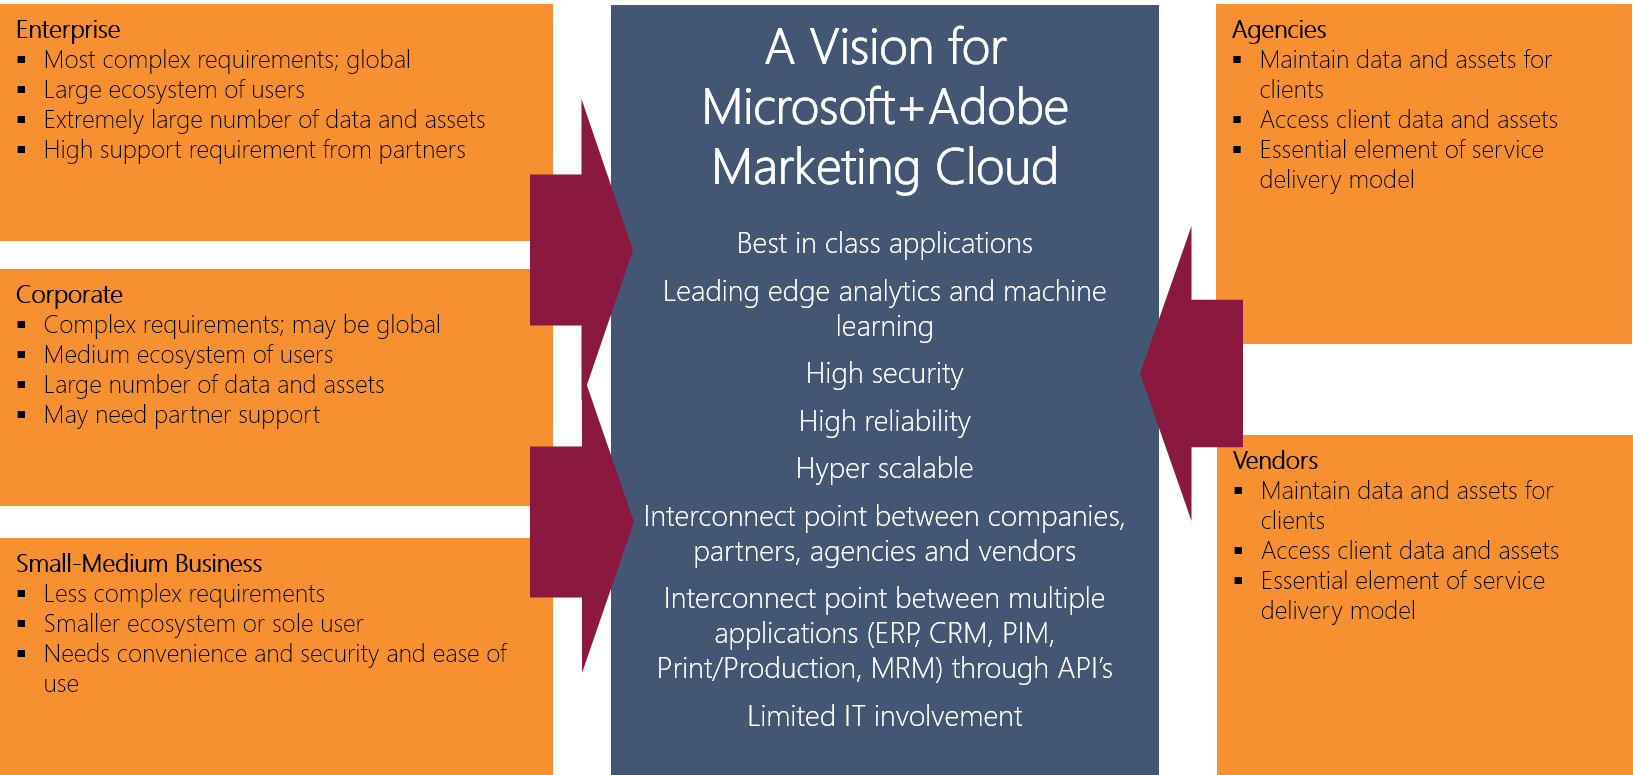 With Microsoft's connections into Accounting, Finance, IT and Sales, and Adobe's connections into Marketing, Agencies and Vendors, integration of may be deployed into virtually any company, scaling up and down for marketers of all types.